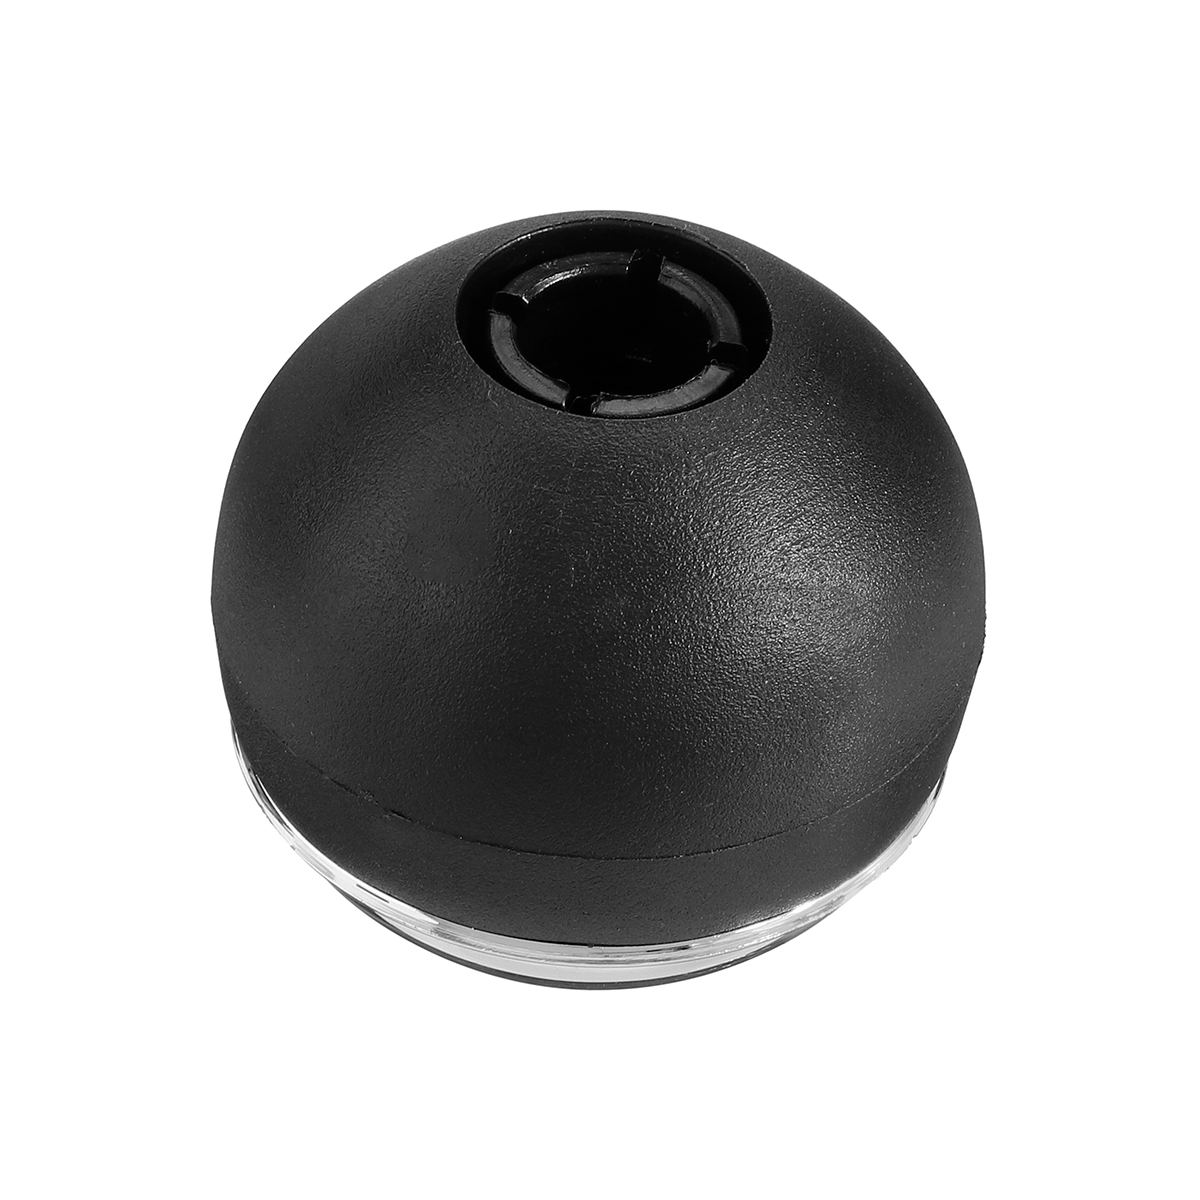 Color : Black Car Gear Shift Konb 5 6 Speed Chrome Gaiter Shifter Knob for M-i-n-i R50 2000-2006 Cabrio R52 2002-2008 R51 Auto Parts